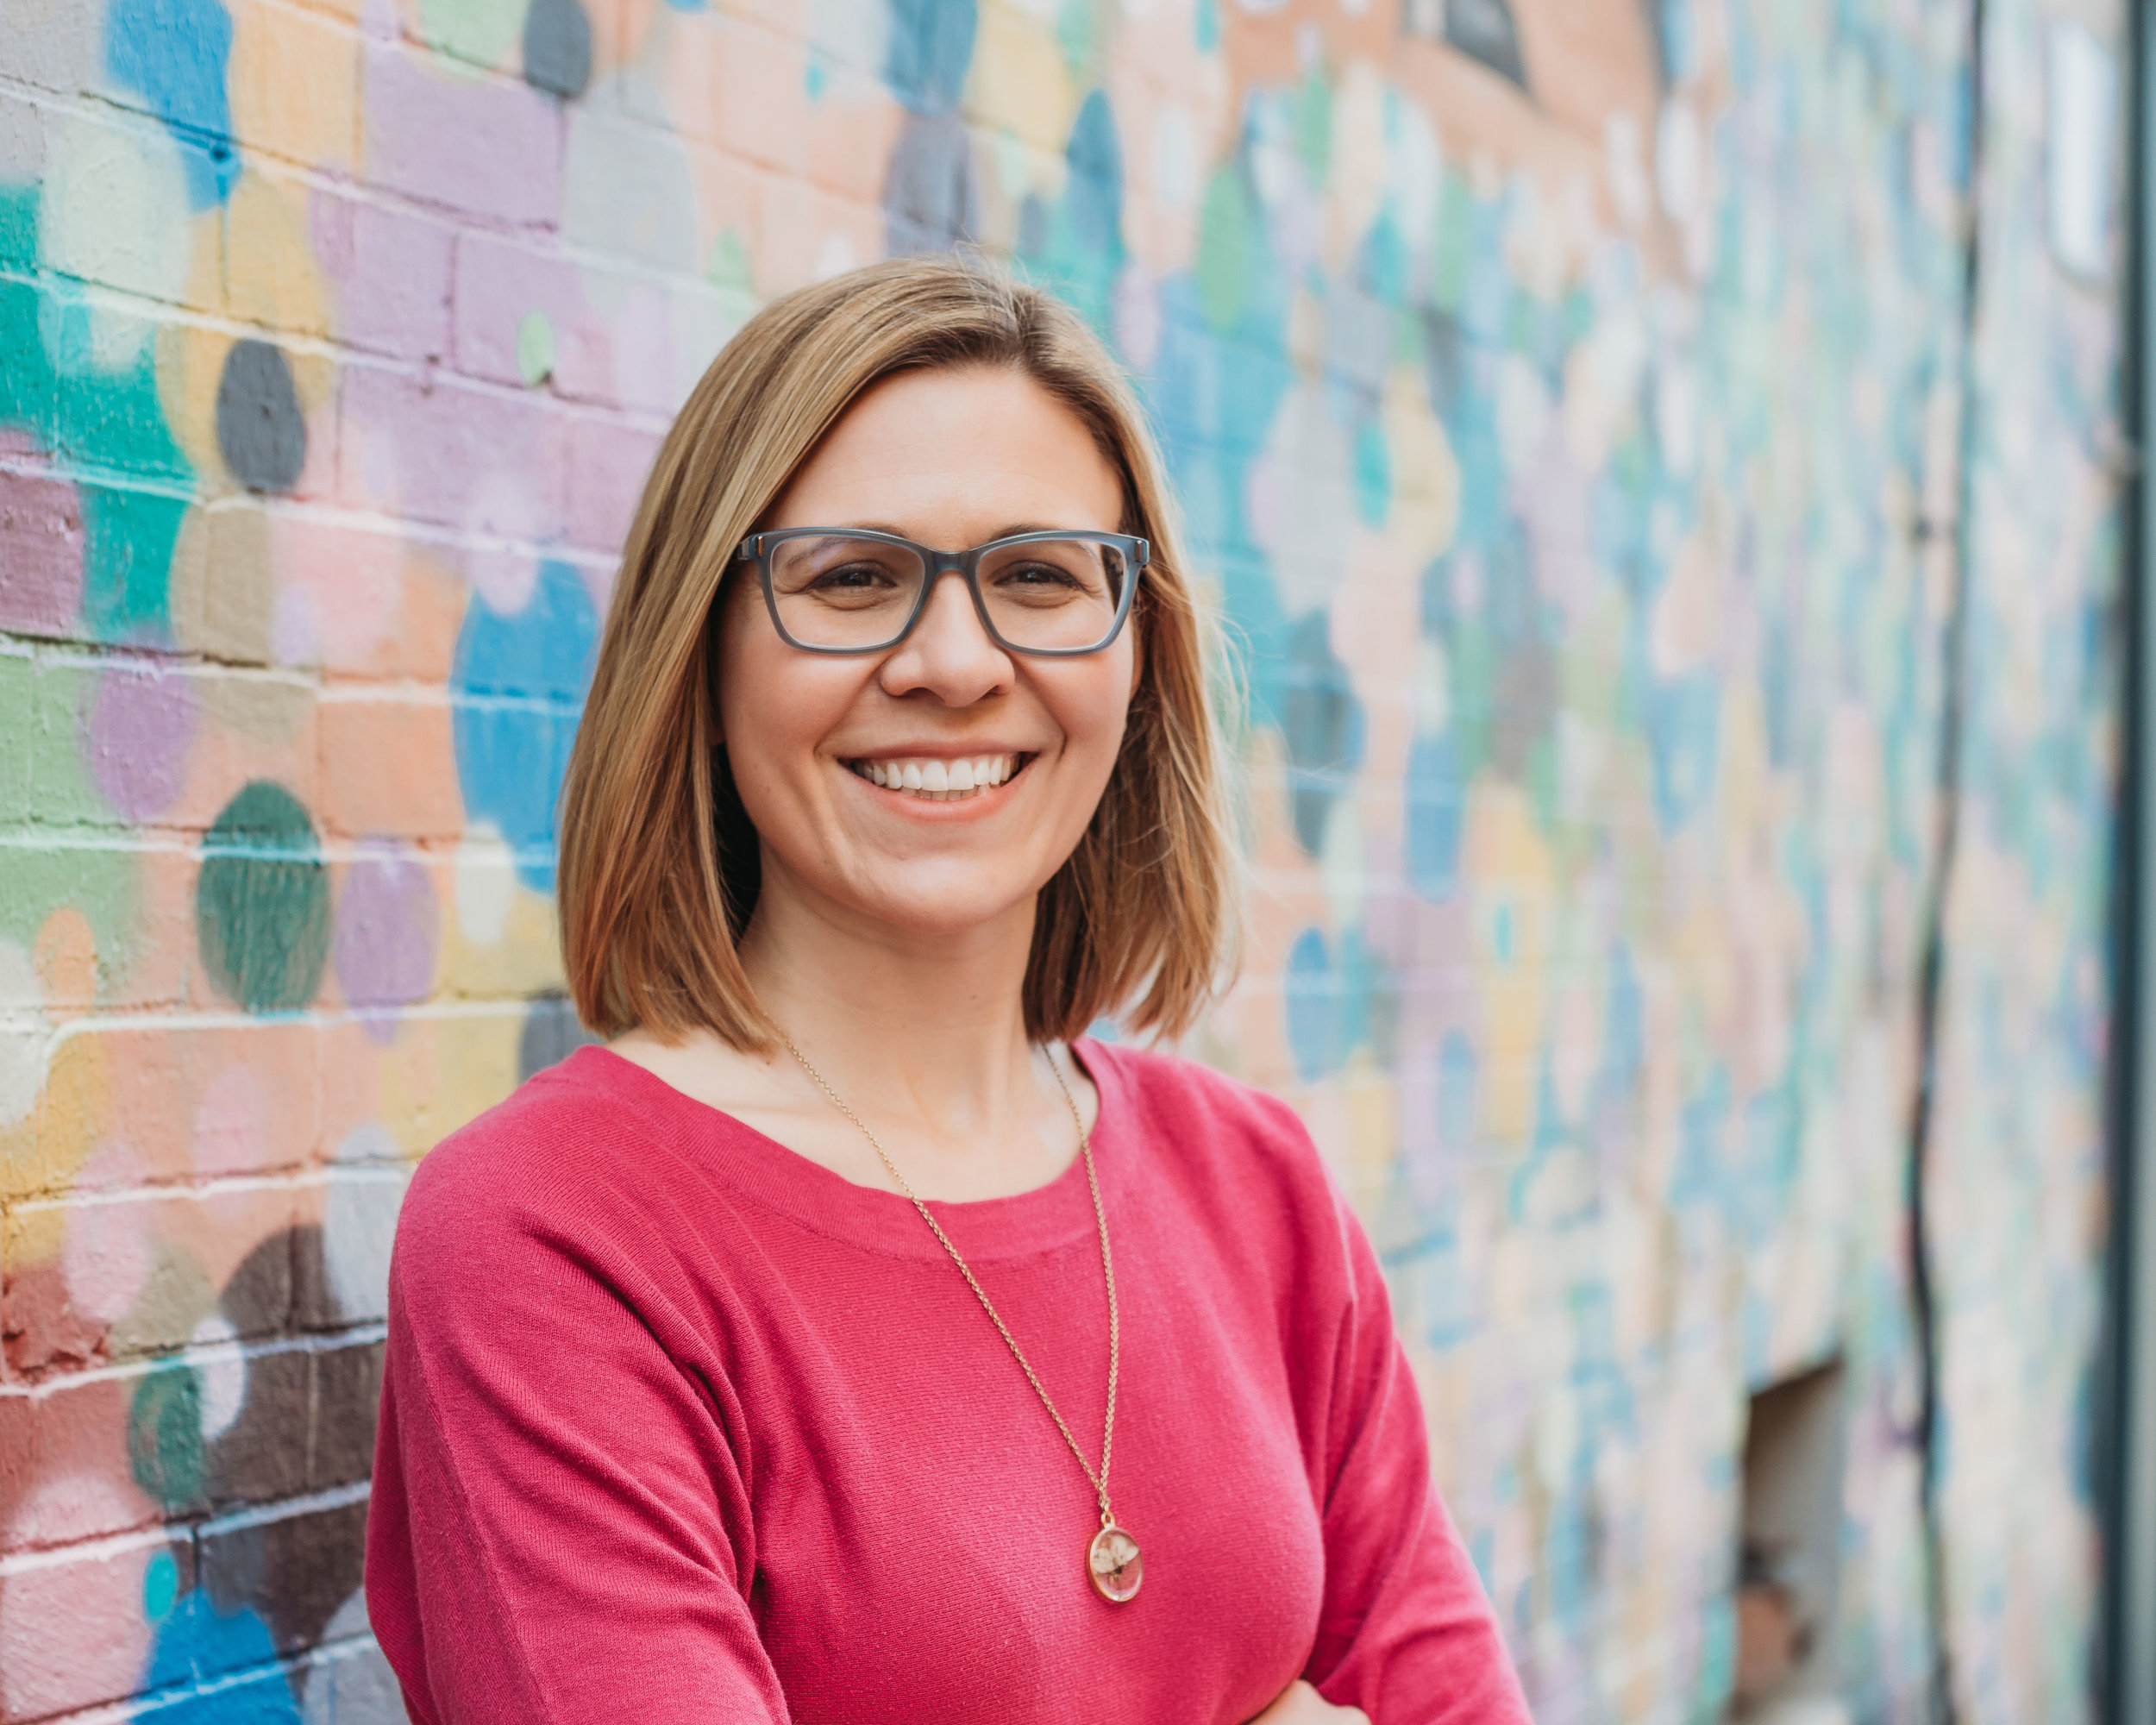 Dr. Joanna Gebhardt O.D., F.A.A.O - Dr. Gebhardt graduated with a bachelor's degree from the University of Wisconsin – La Crosse in 2007 and obtained an optometry degree from Southern College of Optometry in Memphis, TN, where she graduated with honors in May 2011.In 2012, Dr. Gebhardt completed a residency in ocular disease and low vision rehabilitation at Jesse Brown VA Medical Center and Hines VA Hospital in Chicago, IL. She is a member of the American Optometry Association, a fellow of the American Academy of Optometry and board certified by the American Board of Optometry. Dr. Gebhardt spent five years working at ophthalmology practices prior to relocating to the Boston area.